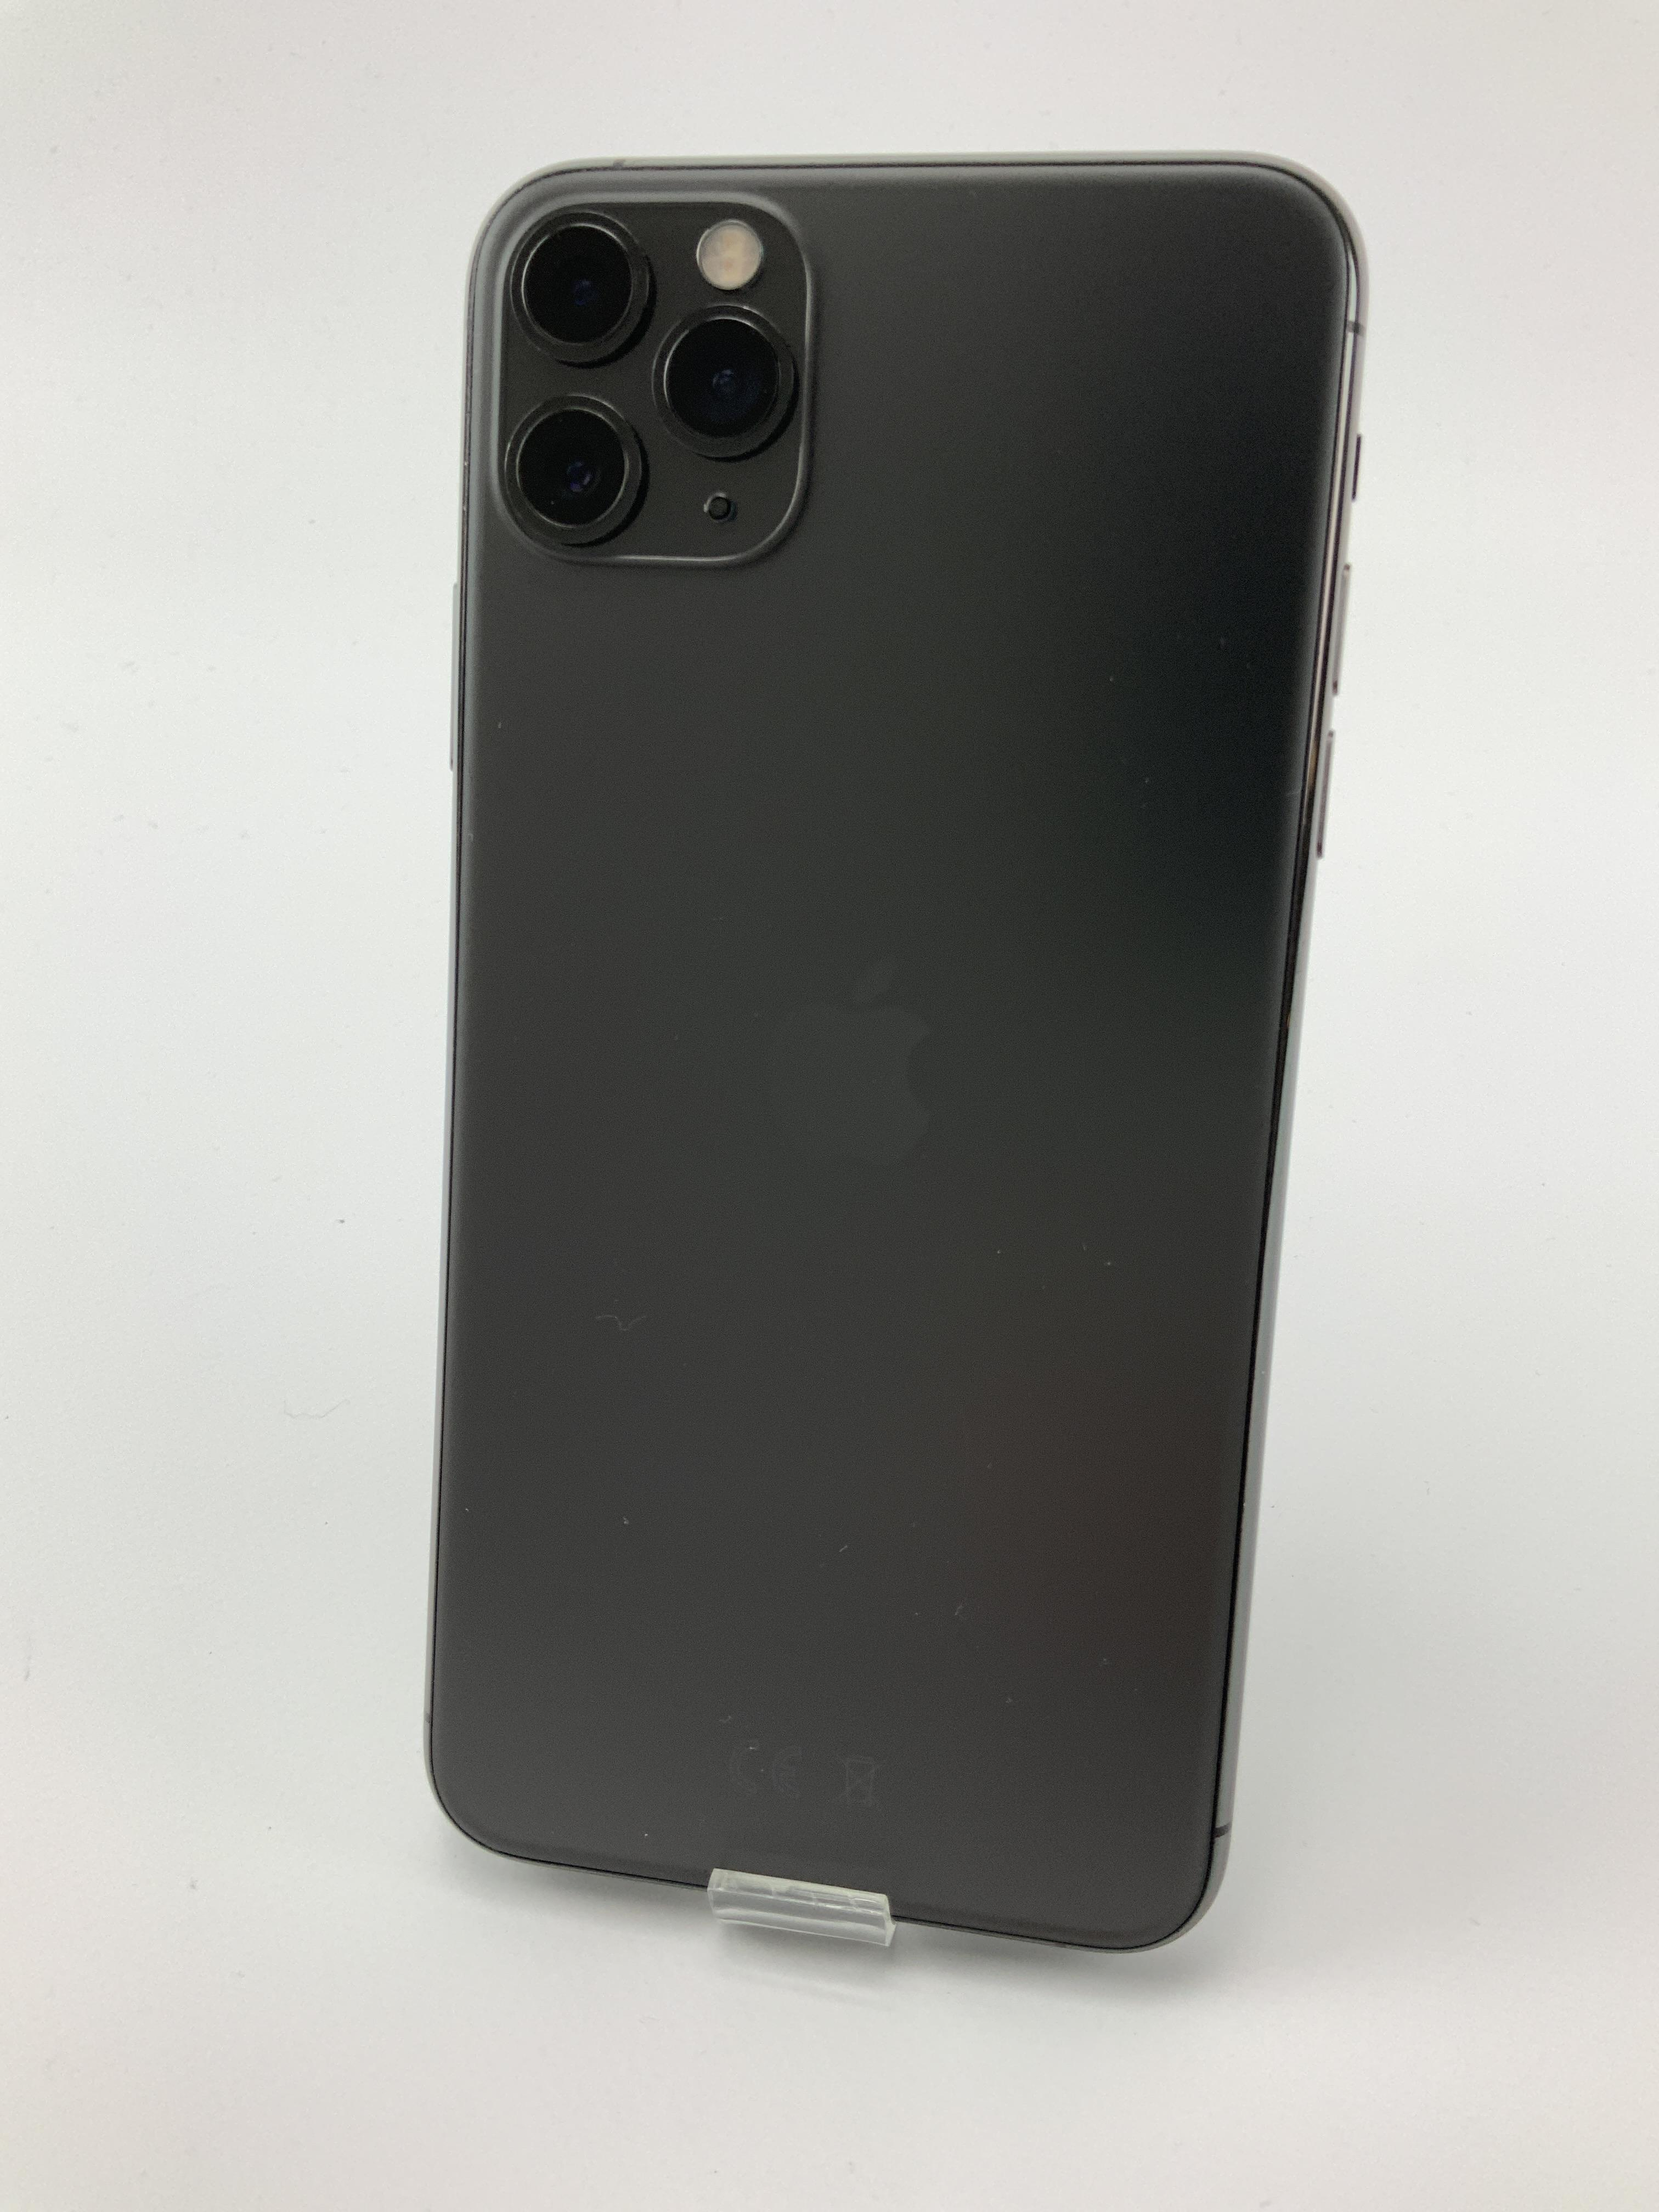 iPhone 11 Pro Max 256GB, 256GB, Space Gray, Afbeelding 2